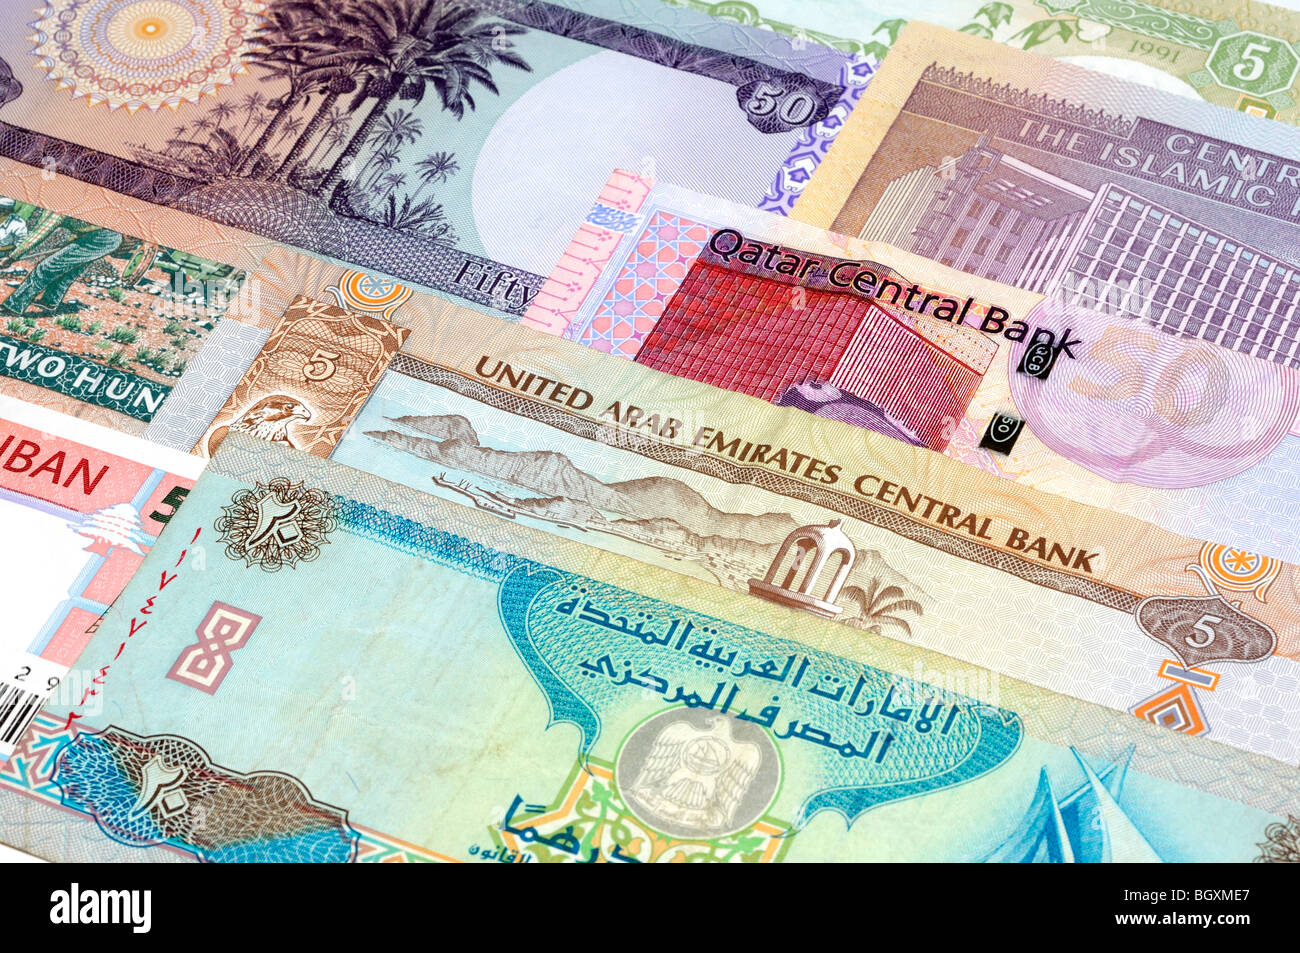 Middle East Currency. - Stock Image